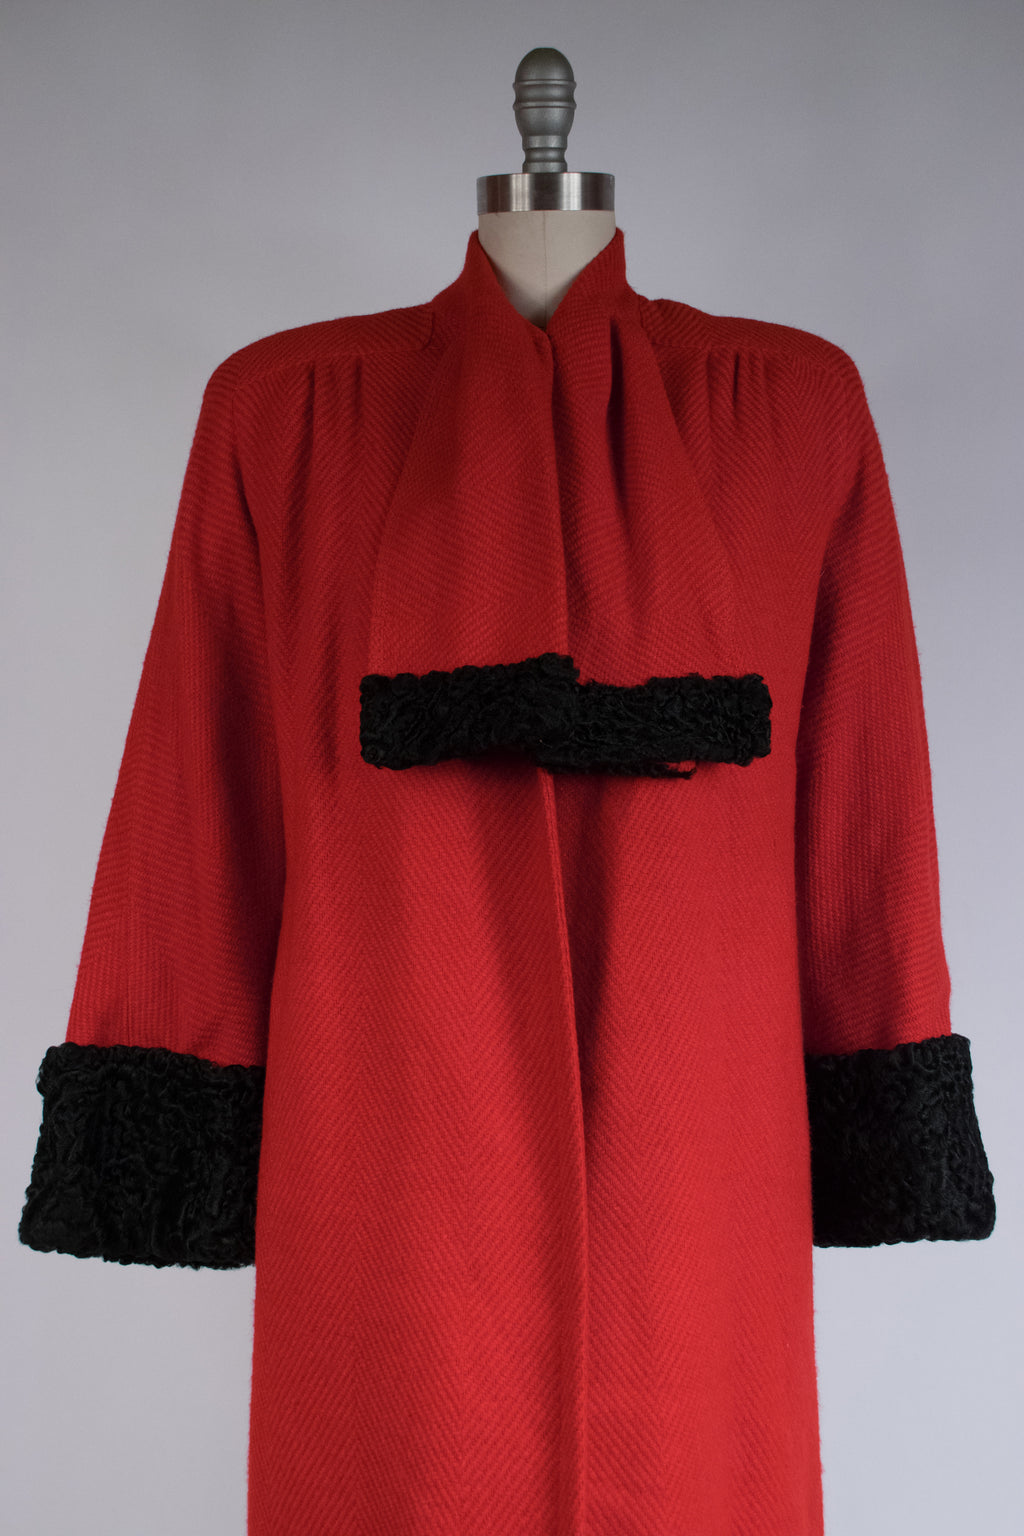 Gorgeous Late 1940s Red Wool Coat in a Macro Herringbone Weave with Astrakhan Lamb Trim